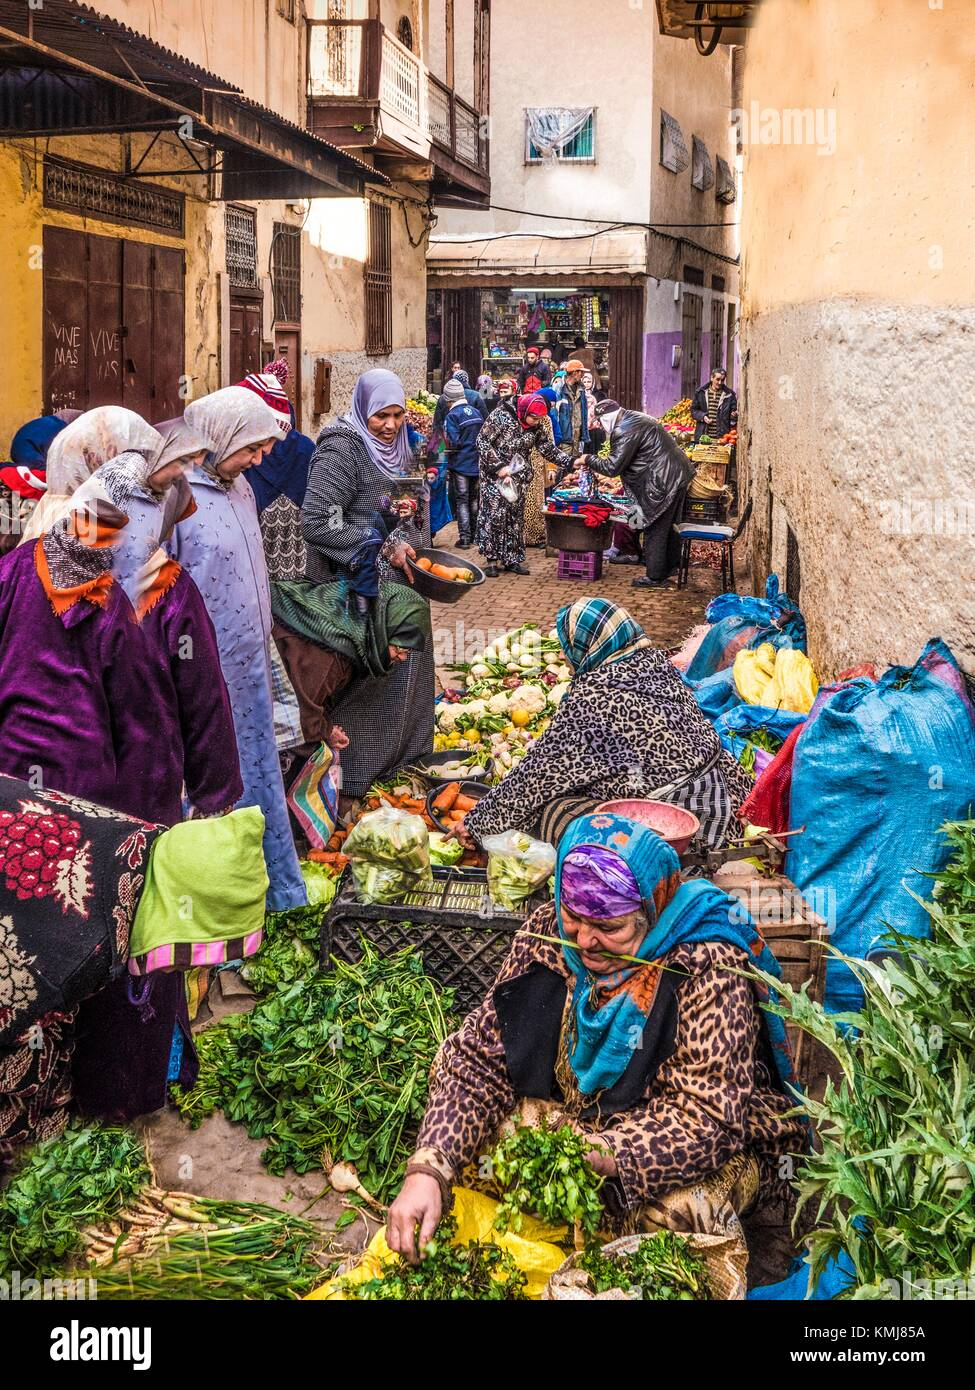 Morocco, Fes, buying vegetables in the street at Fes, Jdid. - Stock Image